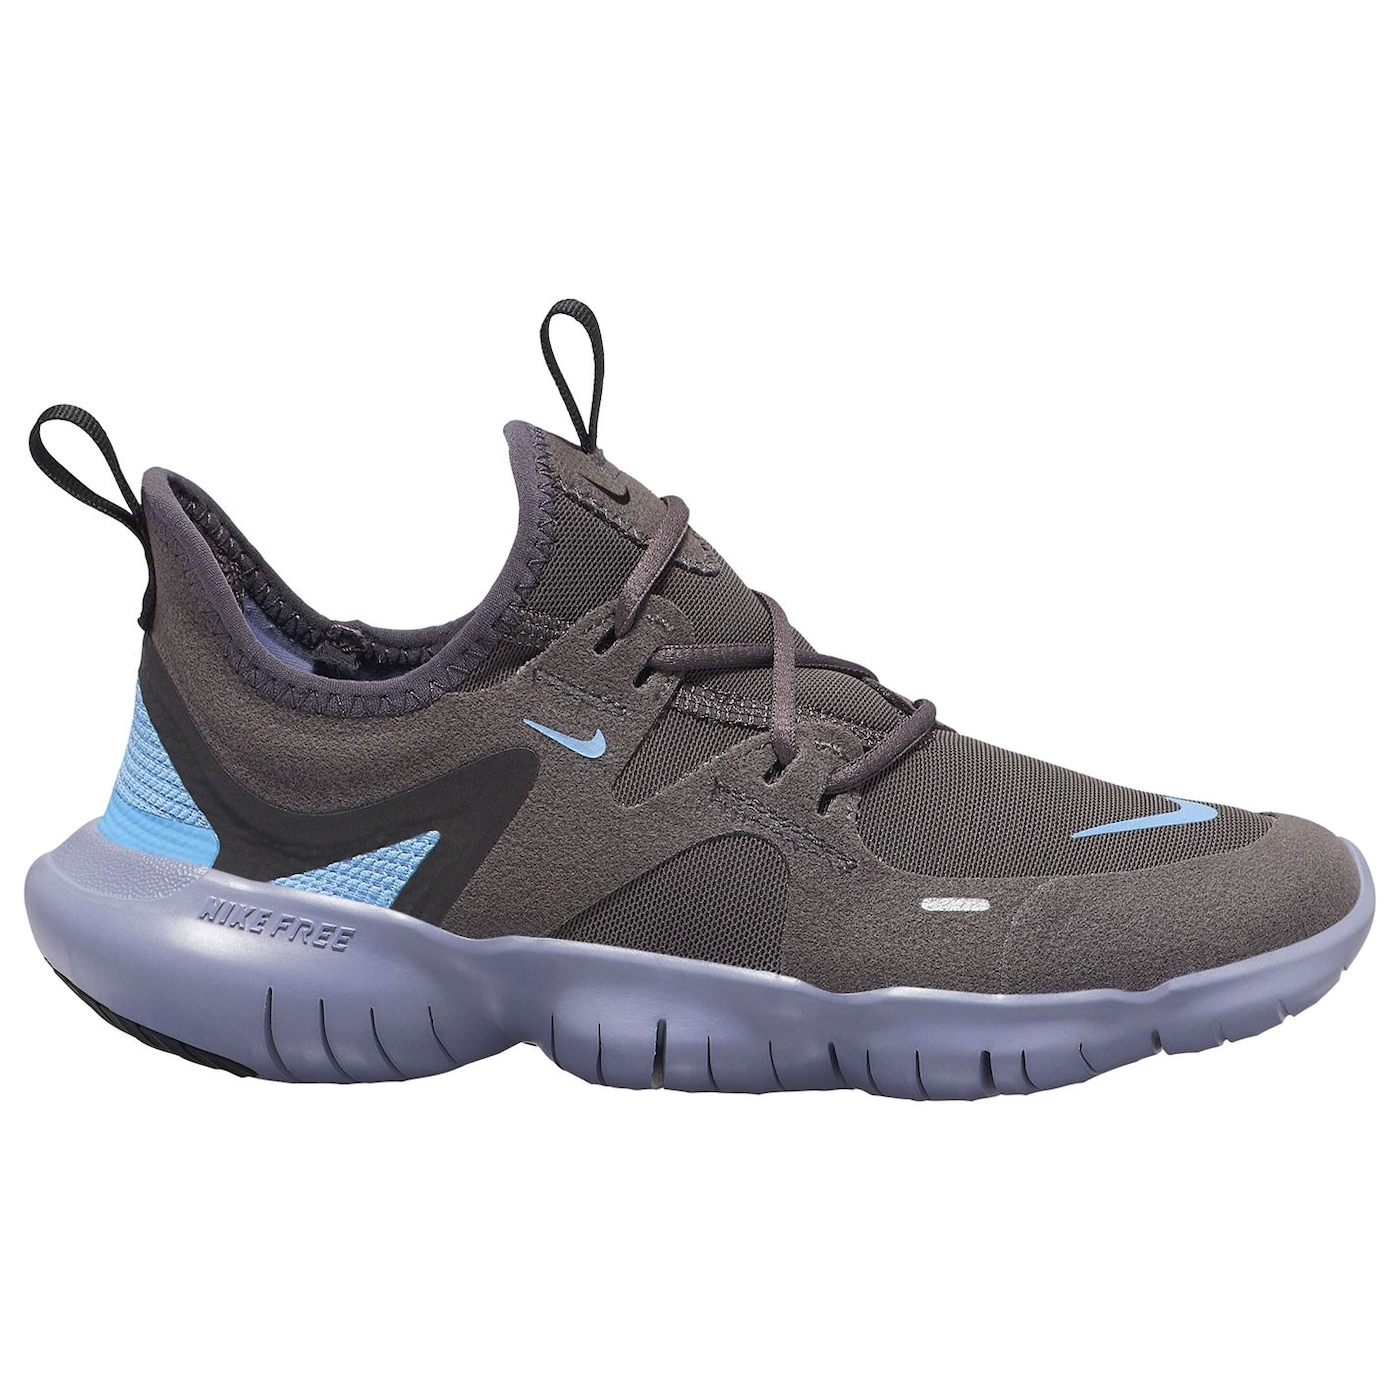 Nike Free Run 5.0 Junior Running Shoes